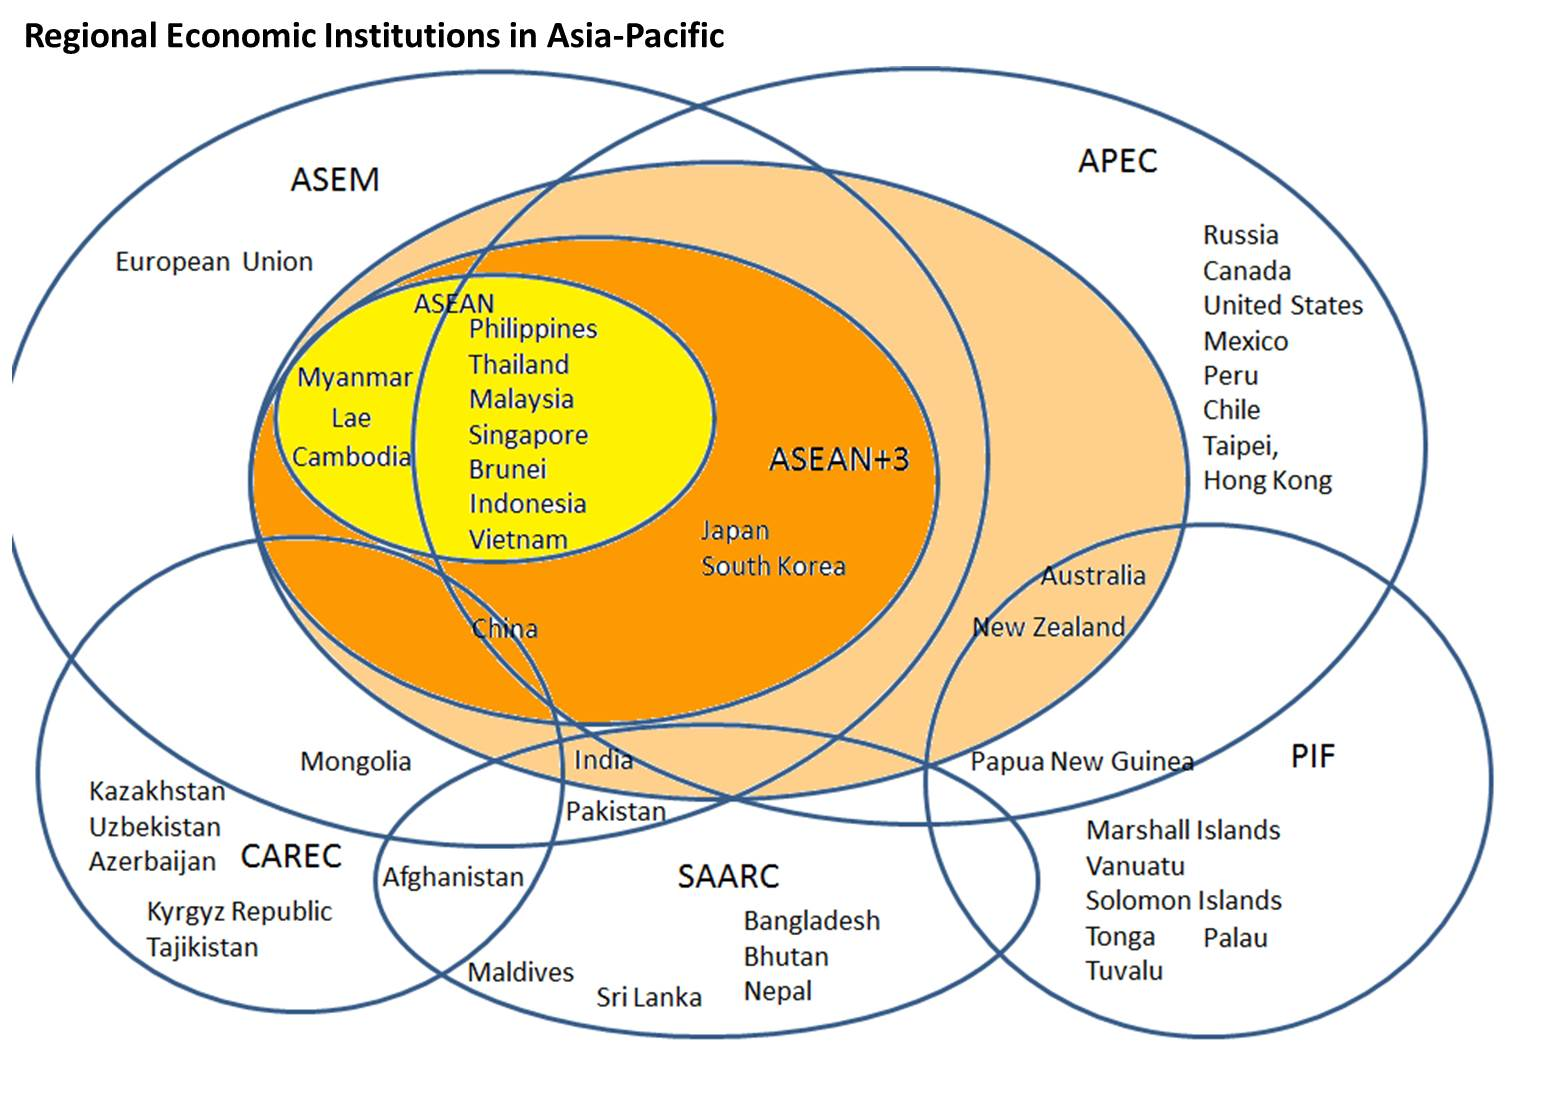 Venn Diagram For 3 Things: Regional economic institutions in the Asia-Pacific diagram ,Chart